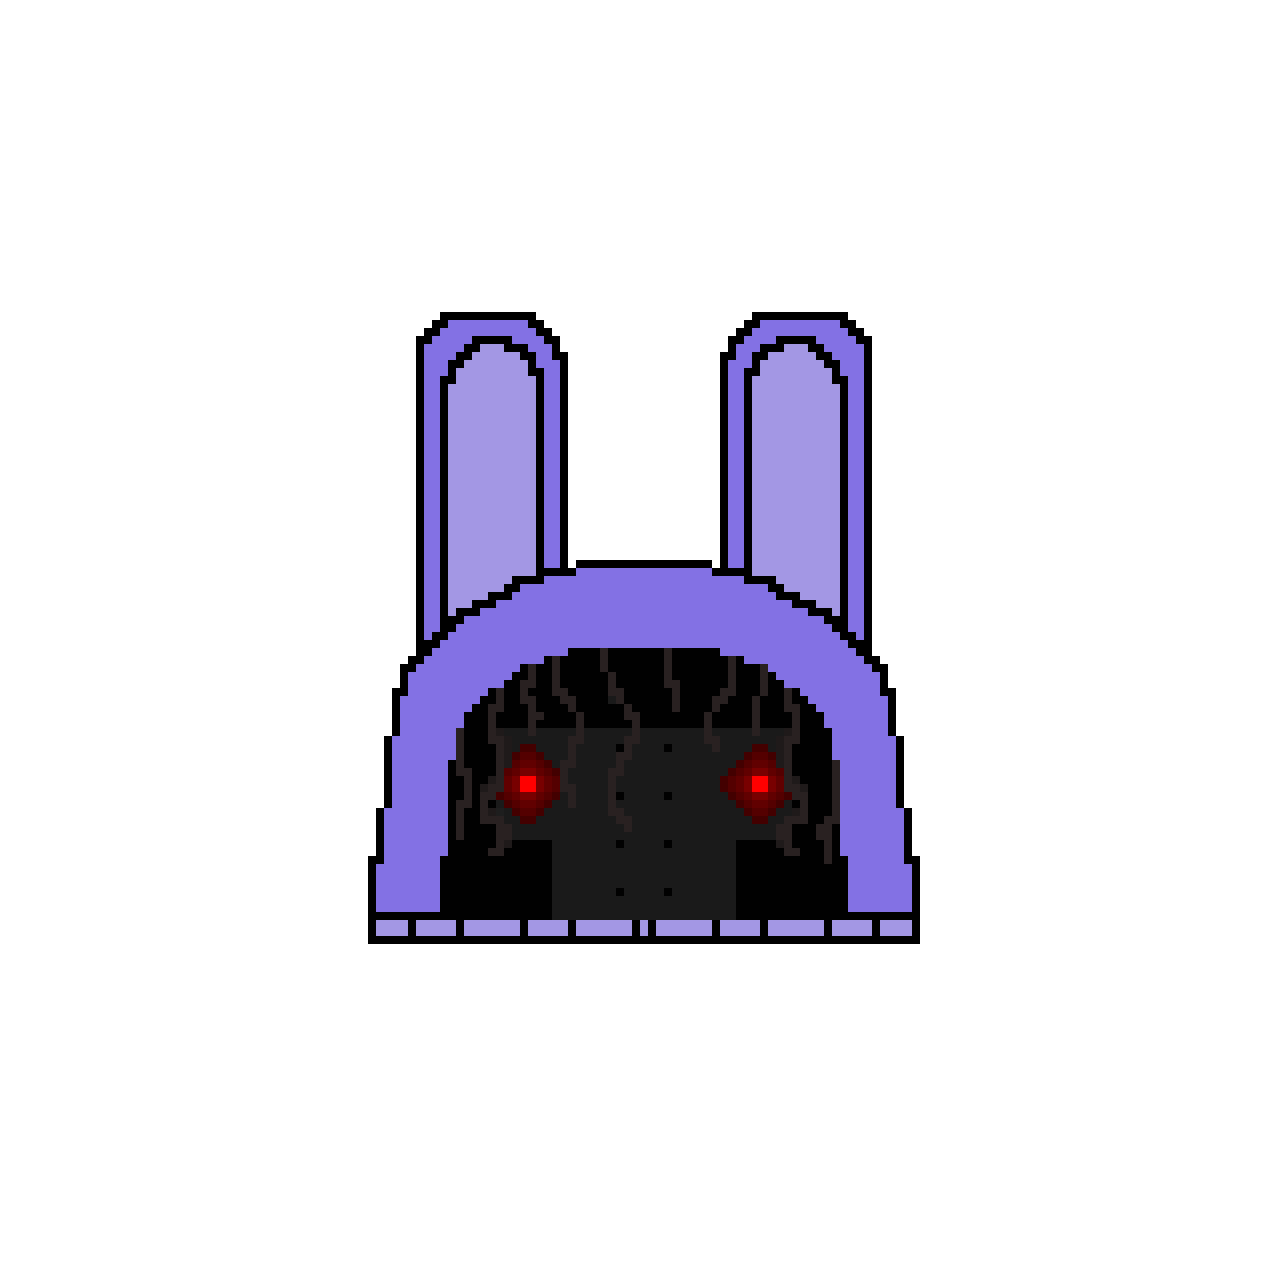 Withered Bonnie The Bunny Slipper (If This Gets Tens Likes I'll Draw Toy Bonnie The Bunny Slip